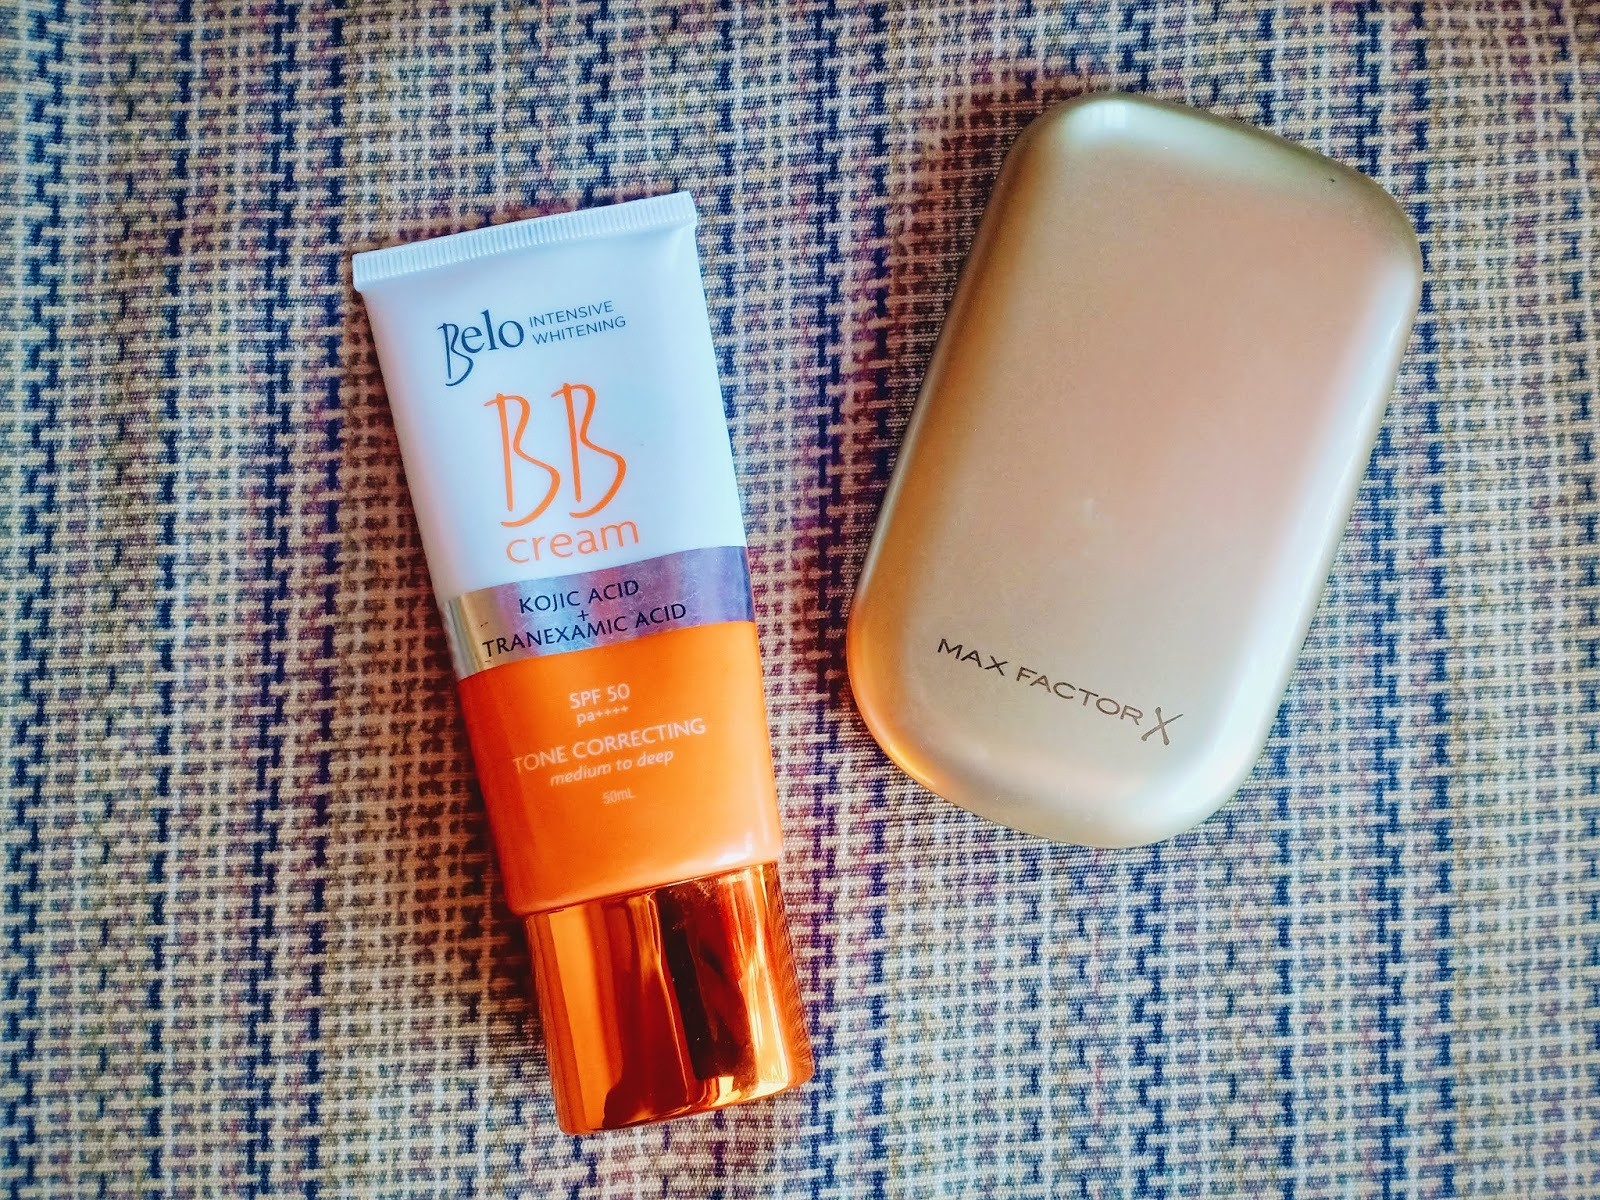 Base Makeup Max Factor and Belo BB Cream